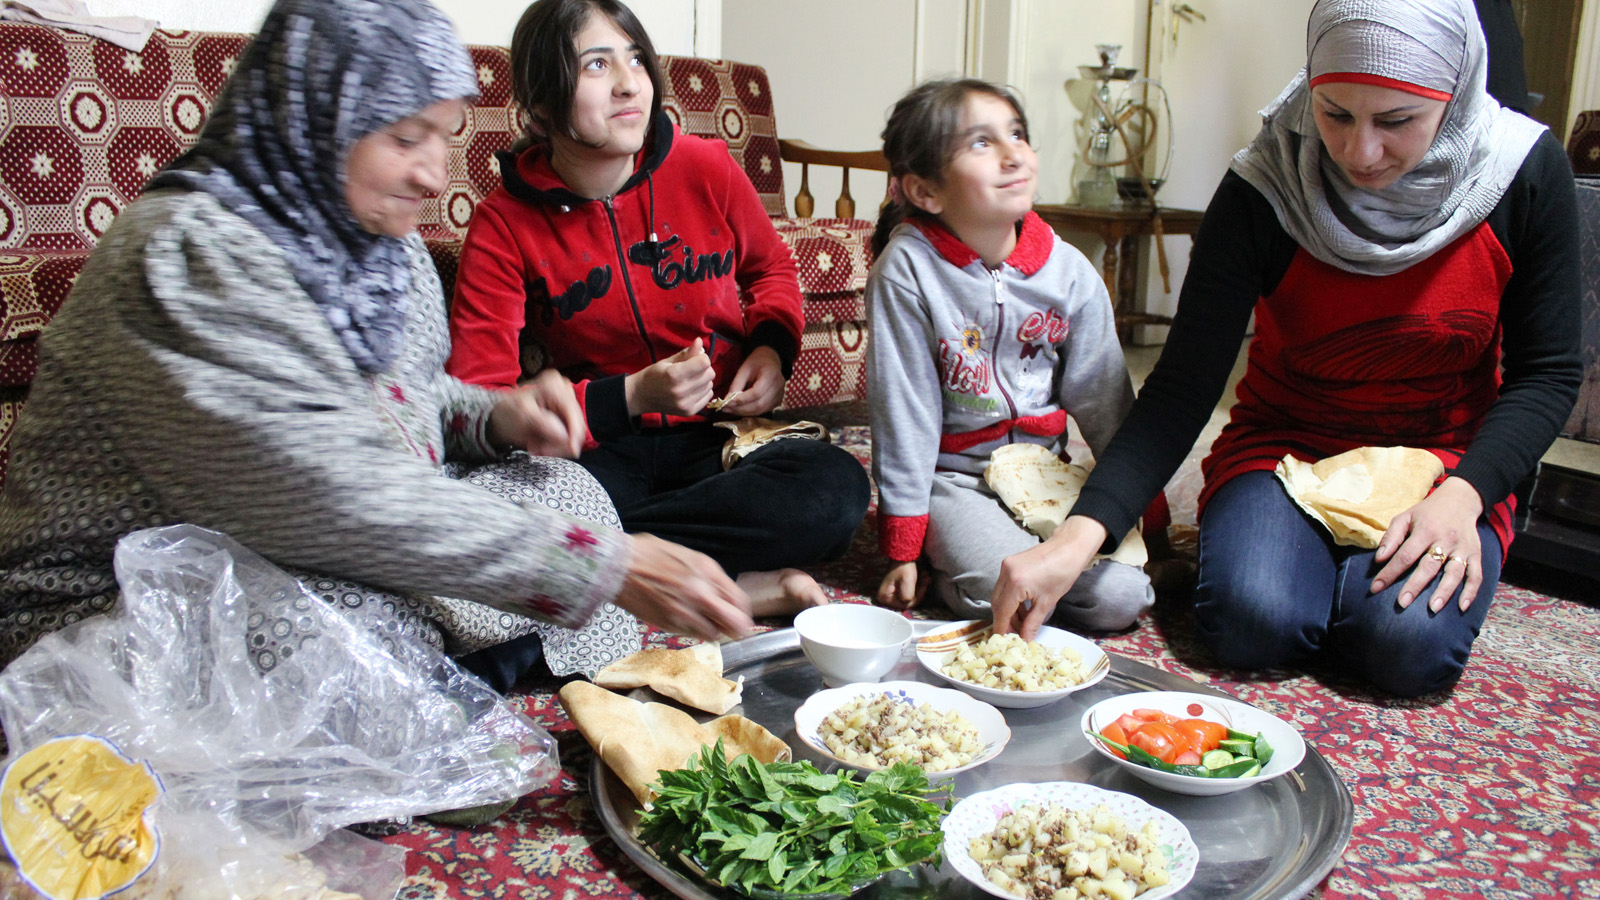 A Syrian refugee family (daughters, mother and grandmother) sit down for lunch in the home of a Lebanese family that has been hosting them for five months. At the beginning of the influx of Syrian refugees into Lebanon in 2011, the majority were hosted in